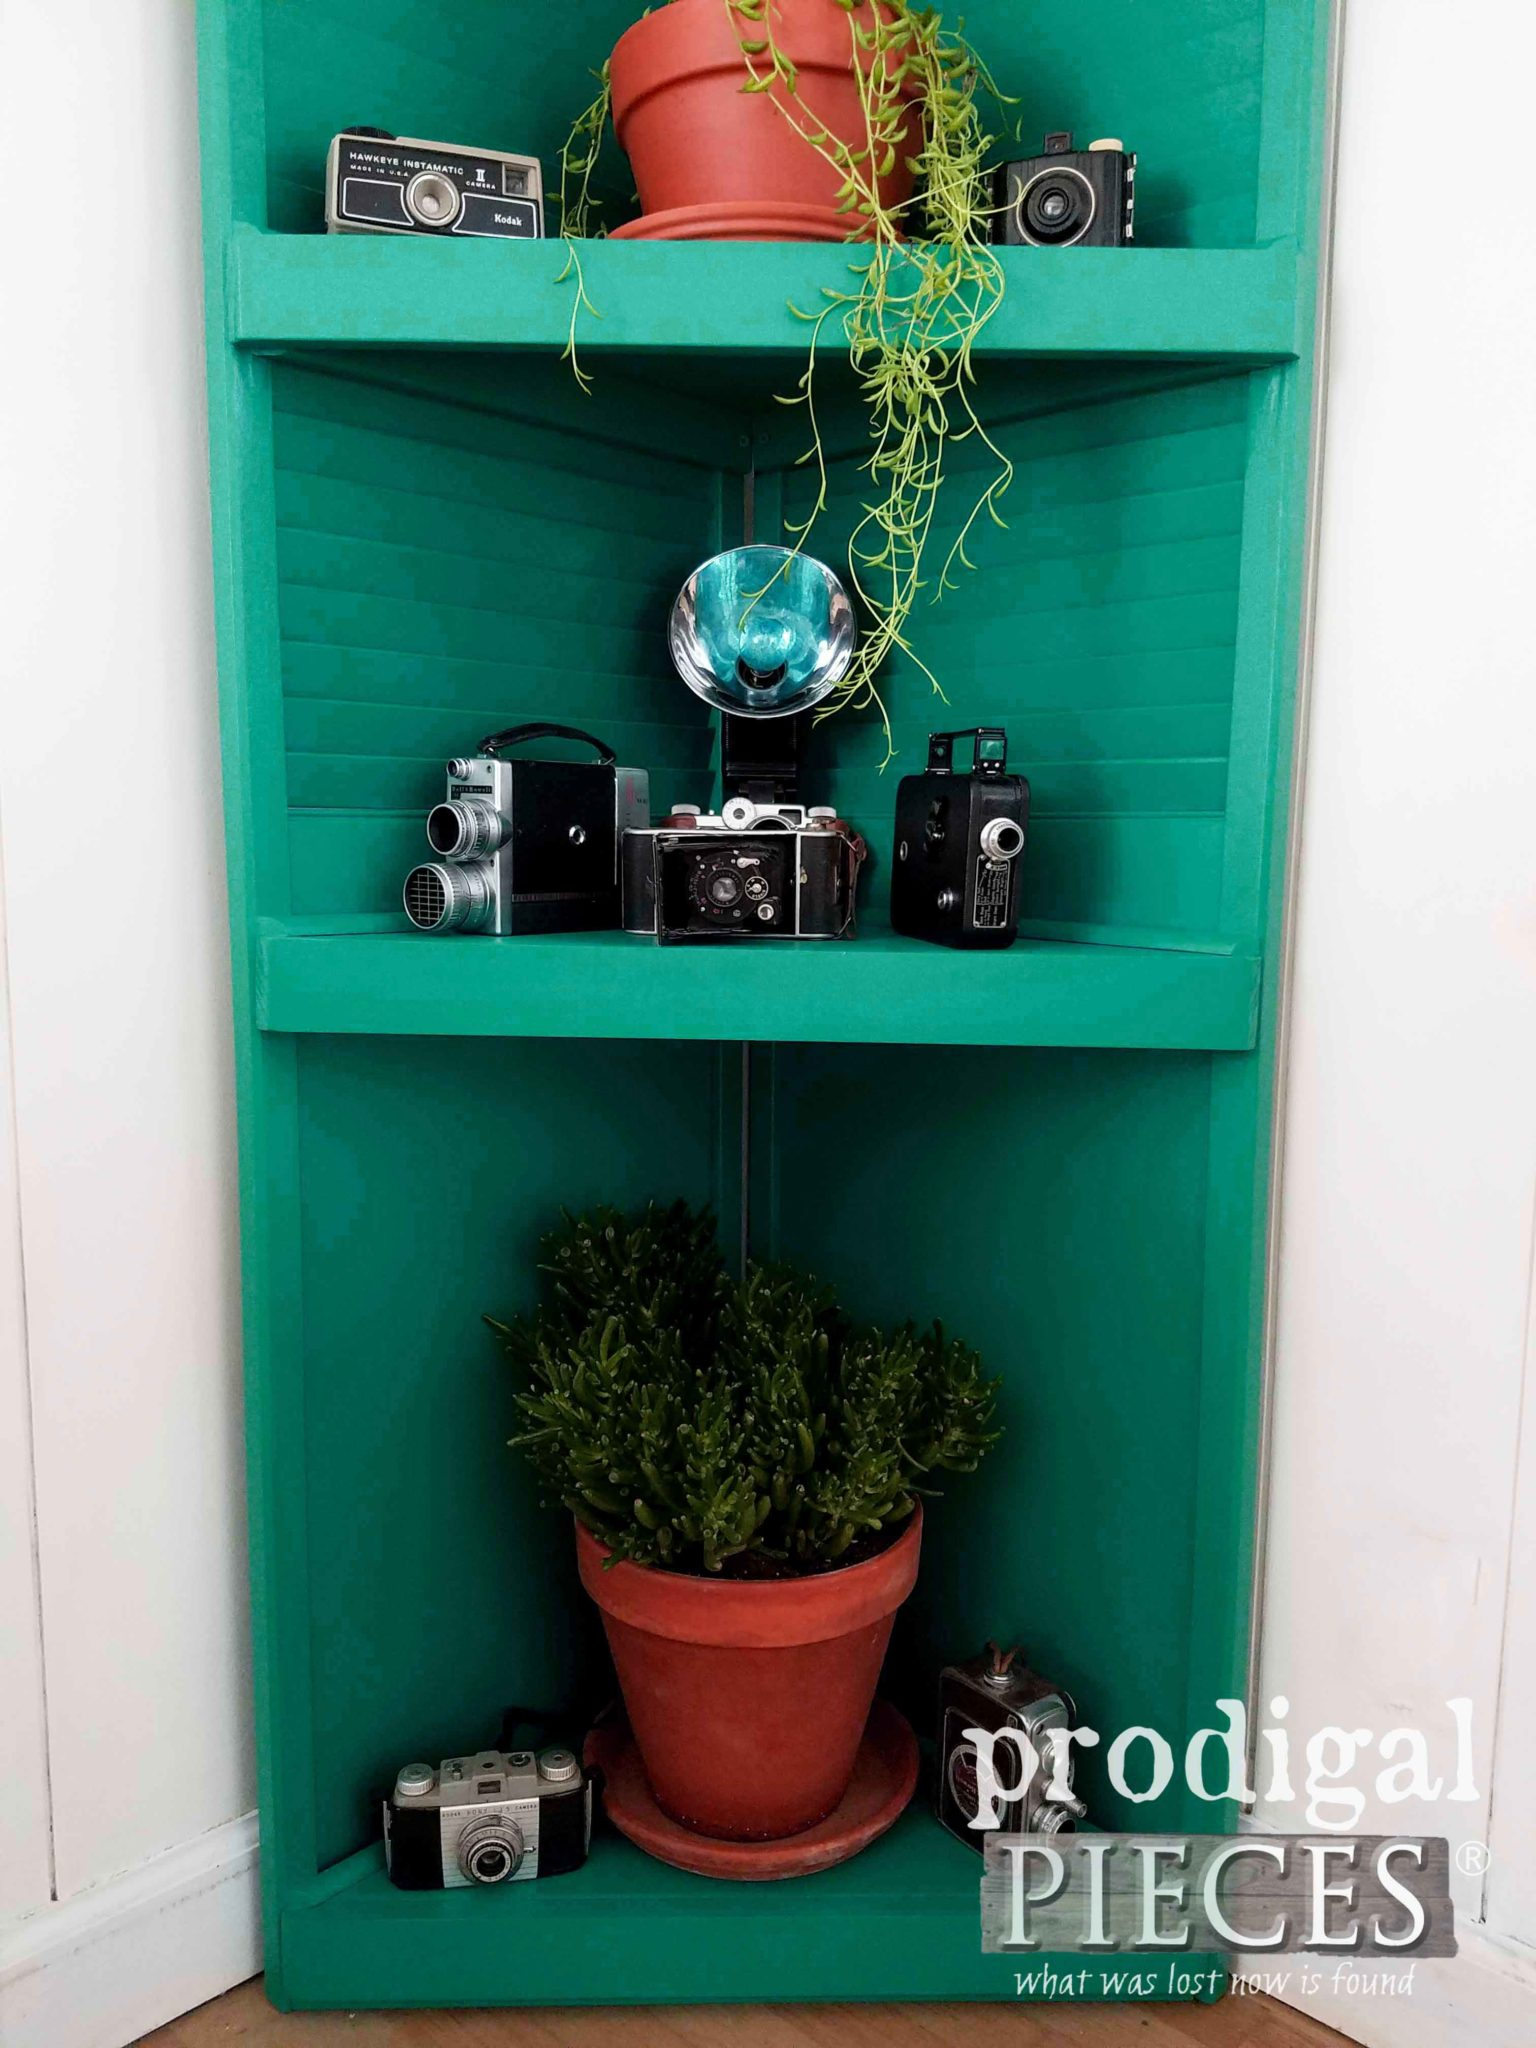 Vintage Boho Decor Featured on Repurposed Louver Door Corner Shelf by Prodigal Pieces | prodigalpieces.com